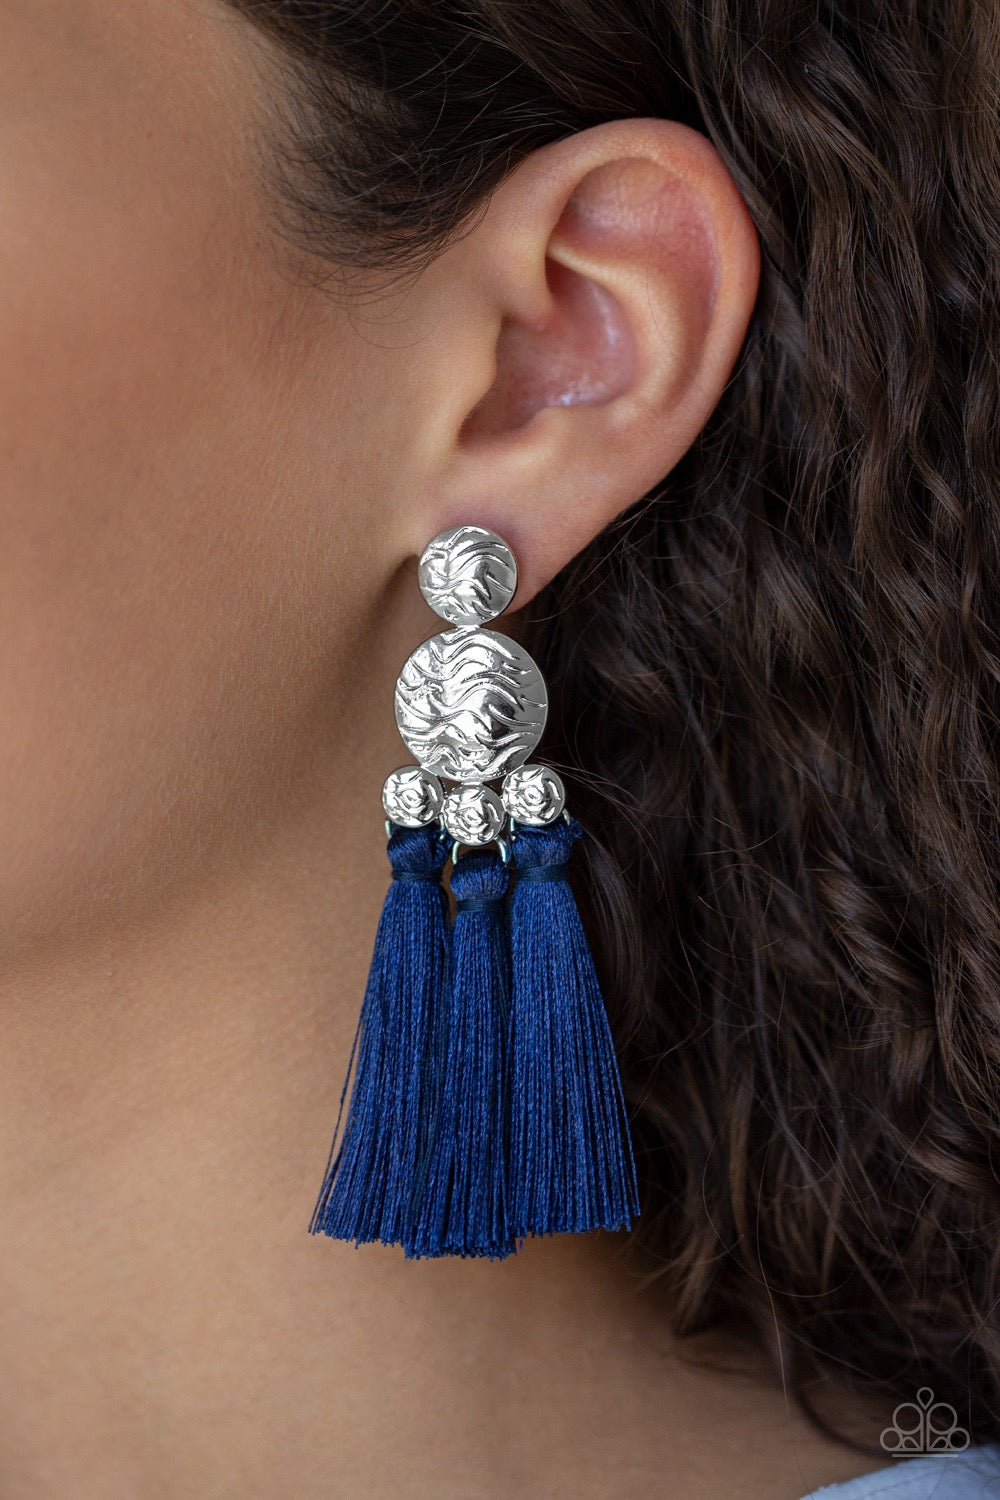 Taj Mahal Tourist - Blue Earring 28E